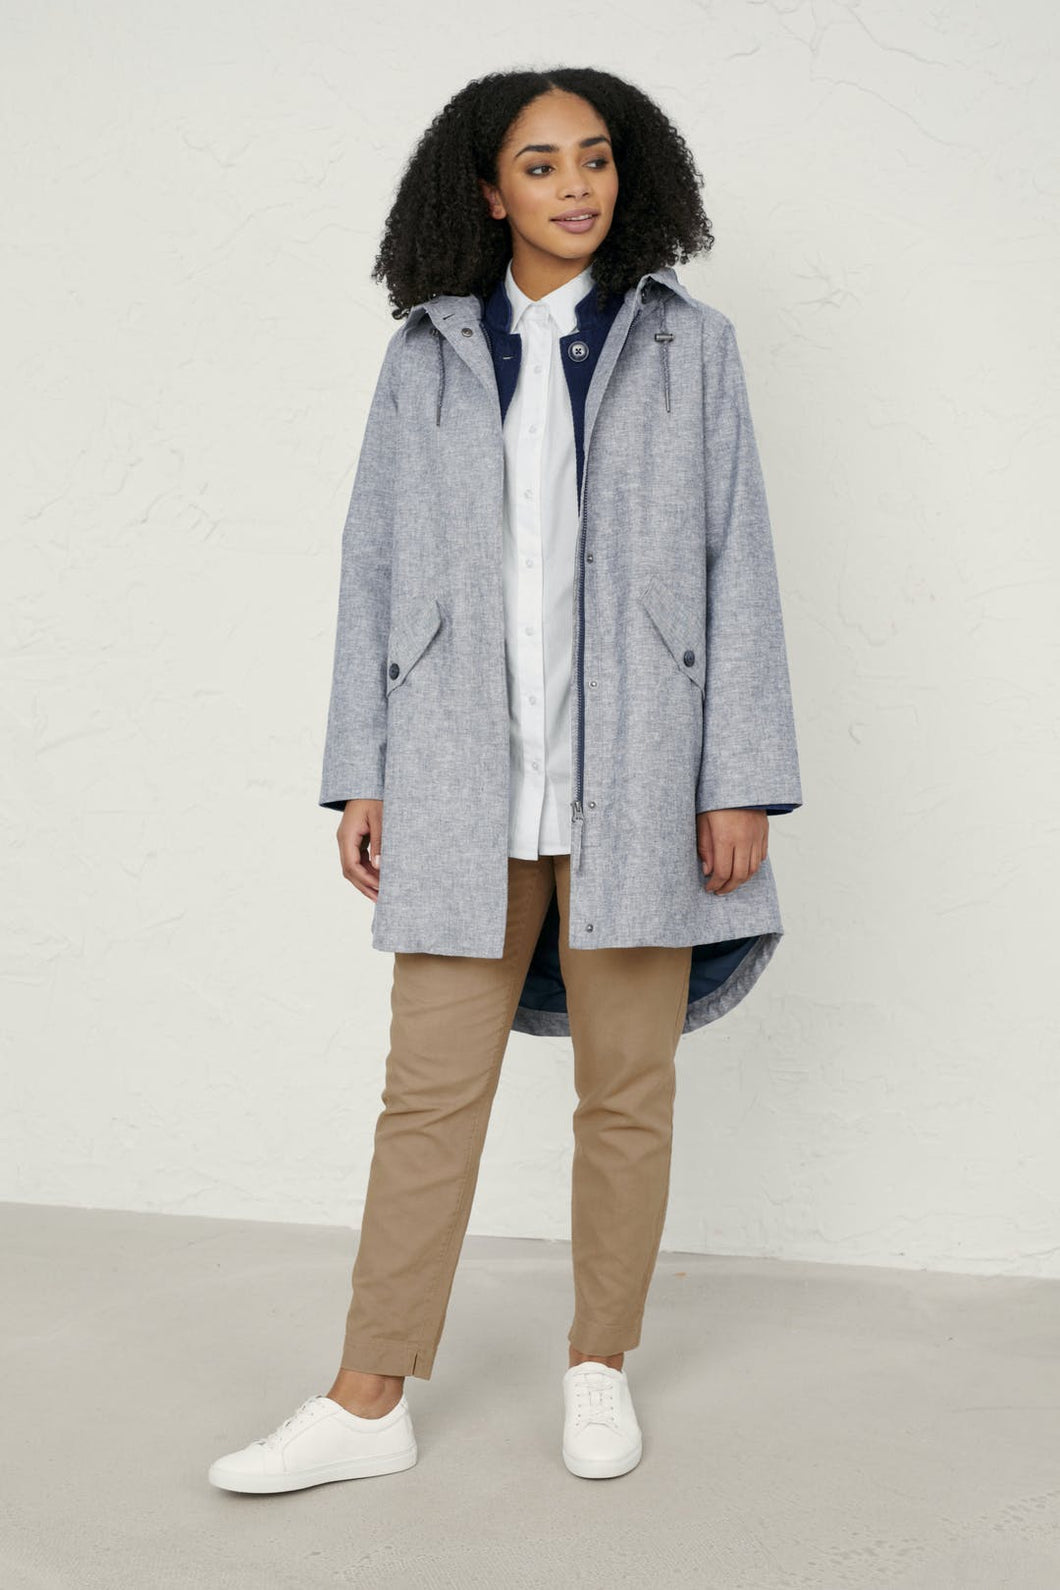 Seasalt Seafaring coat in Rosevean Light Night